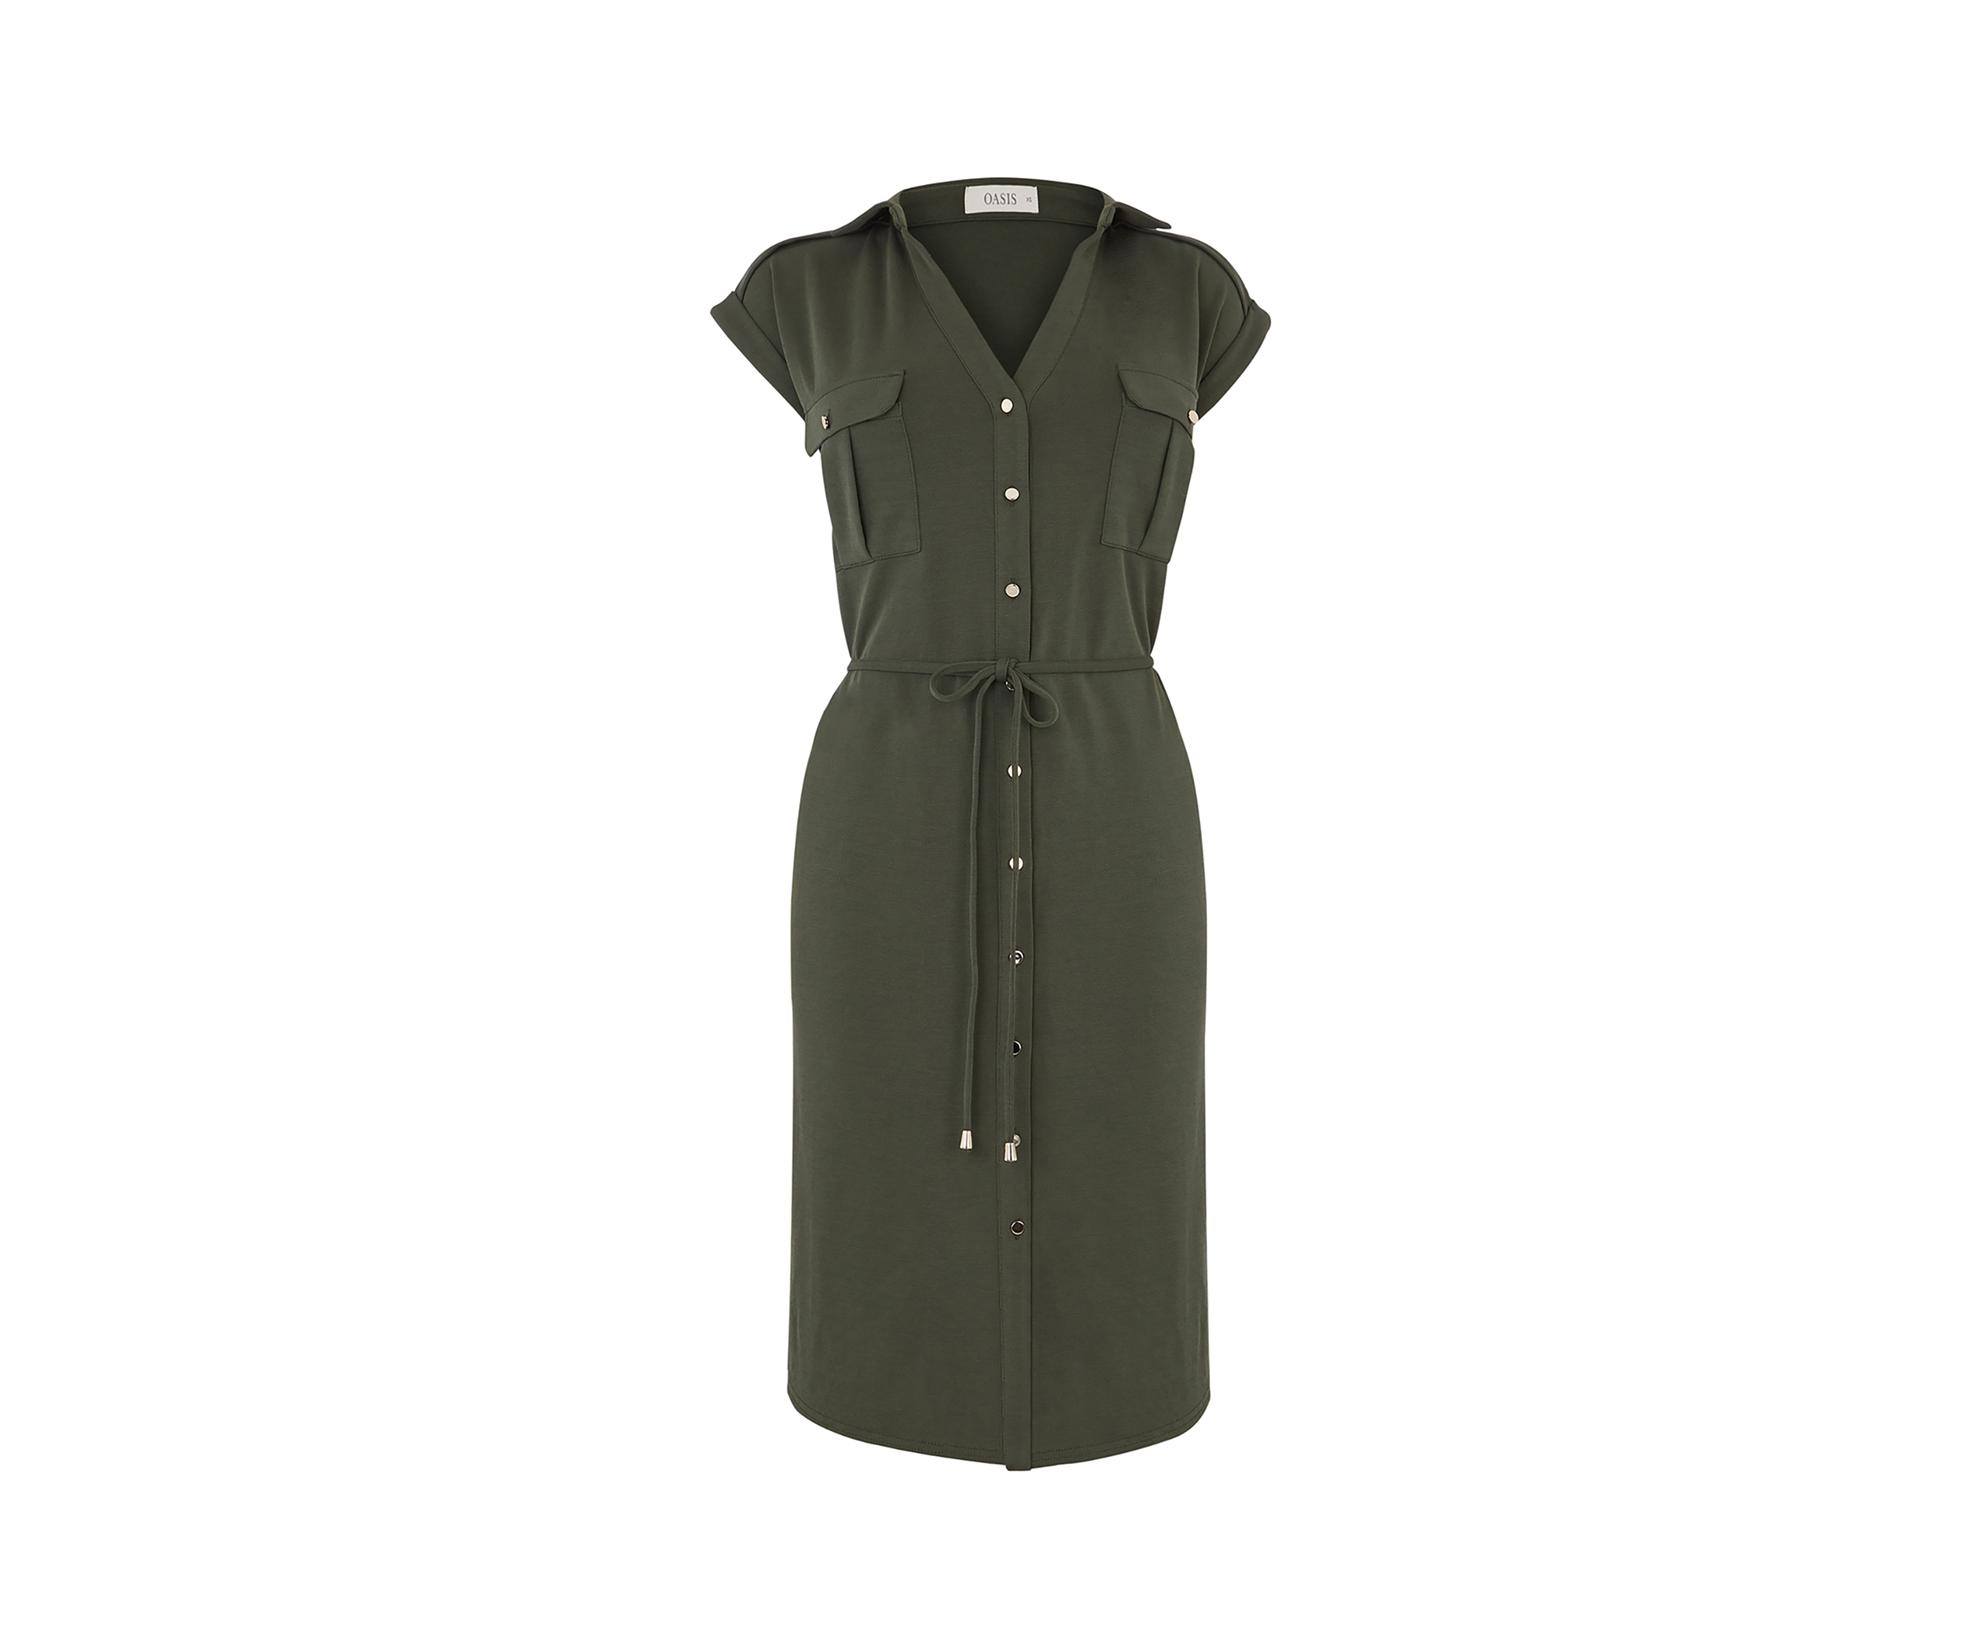 b312186c2cae Oasis Cupro Shirt Dress in Green - Lyst